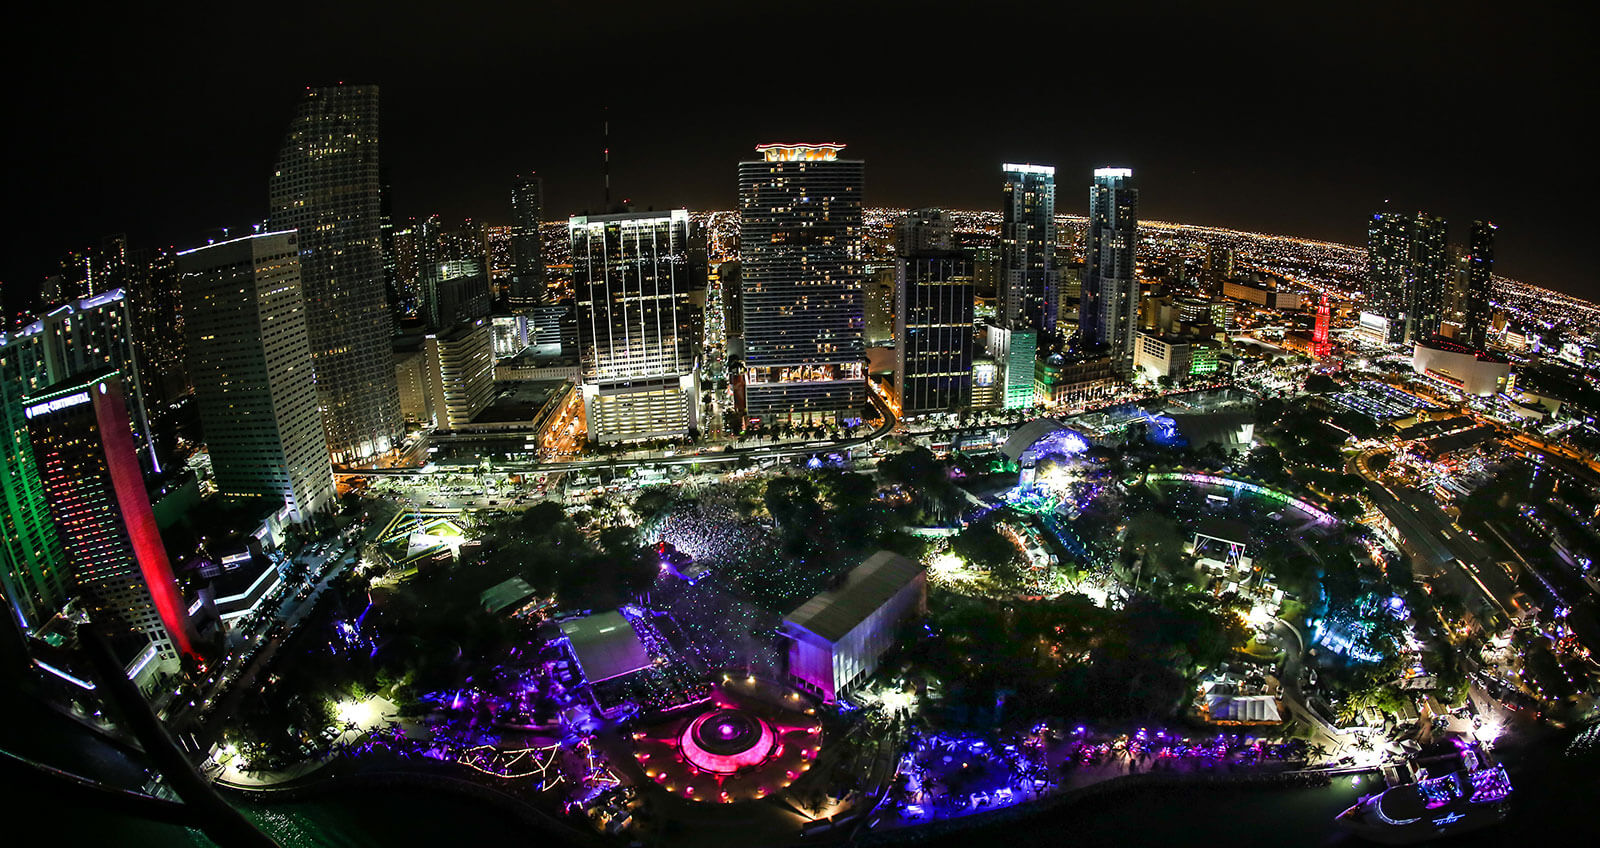 Ultra Music Festival is located at Bayfront Park in Downtown Miami, FL